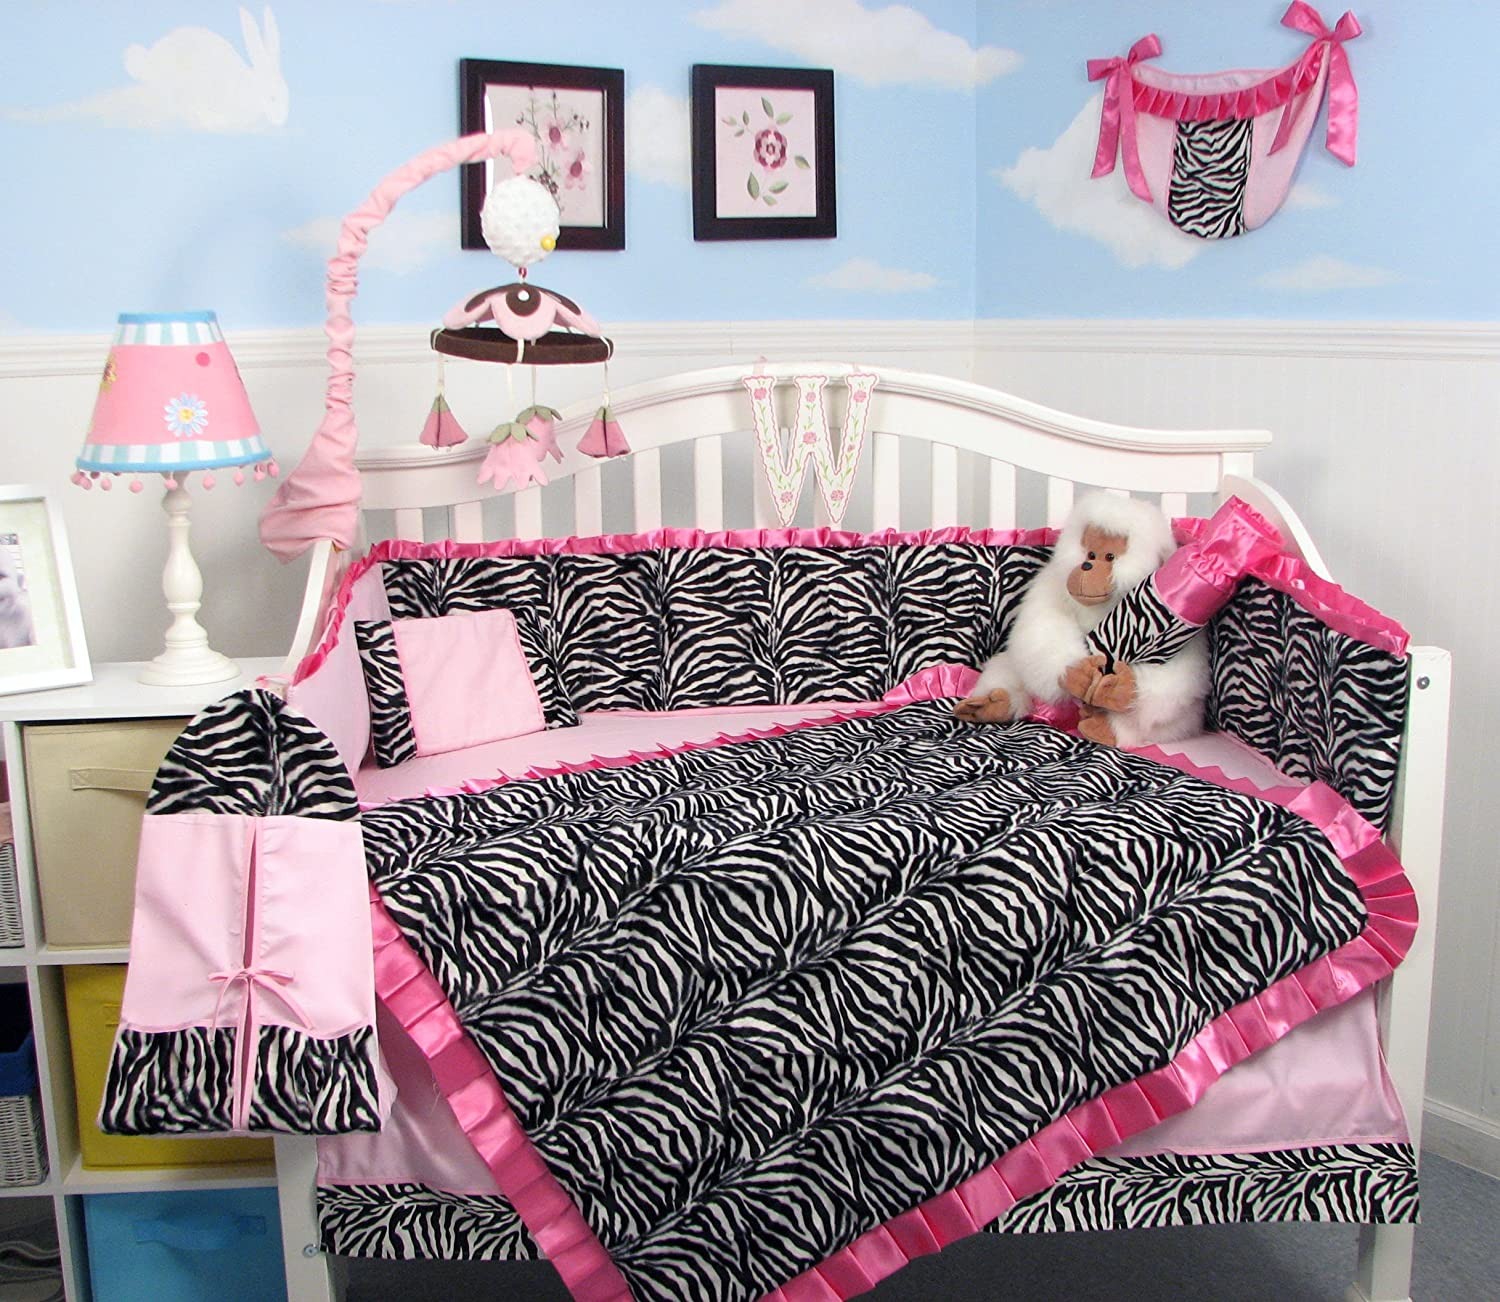 SoHo Pink with Black & White Zebra Chenille Crib Nursery Bedding 10 pcs Set by SoHo Designs: Amazon.es: Bebé